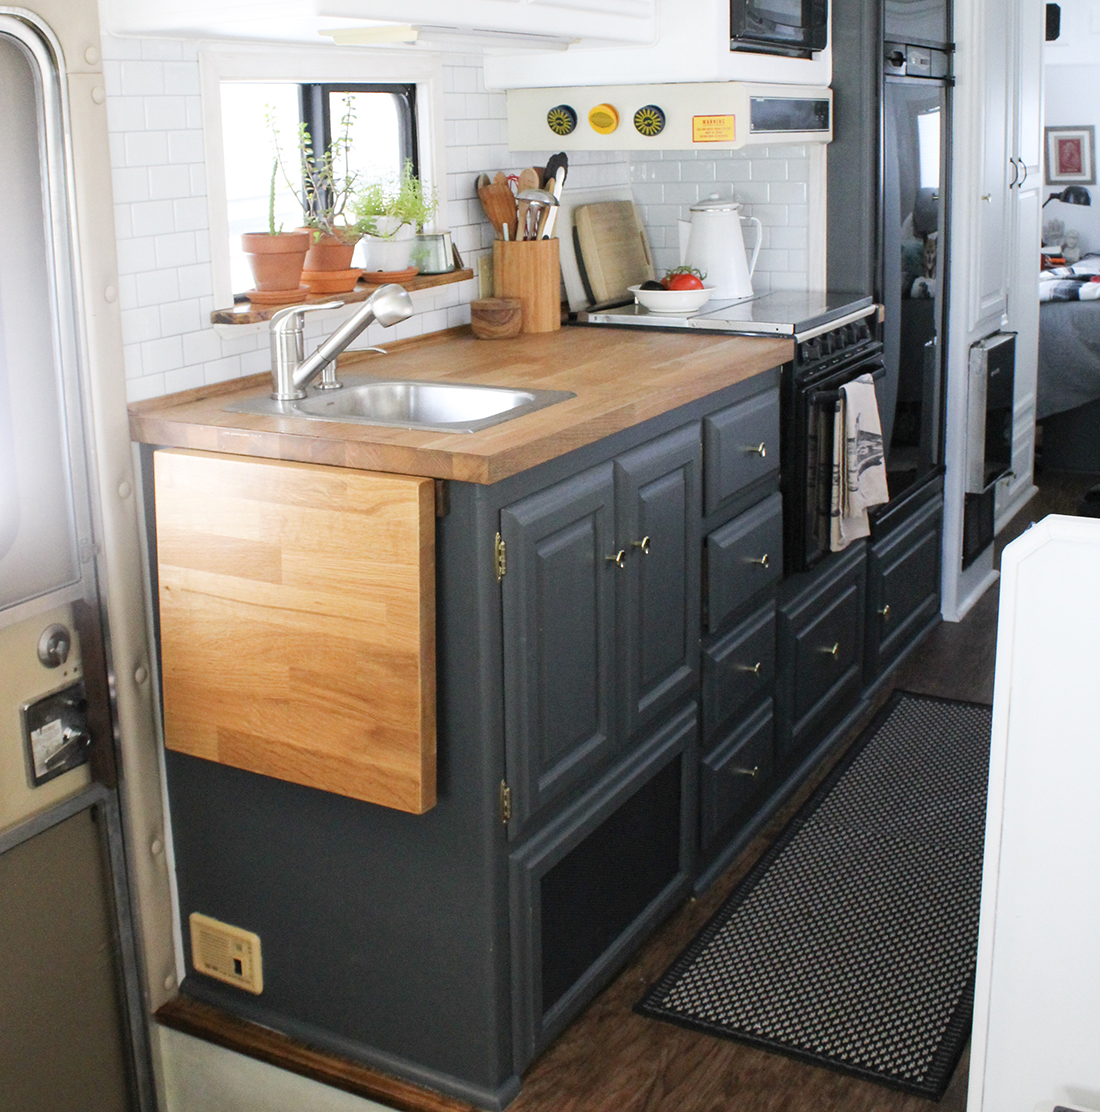 A rug covers the passage leading through the galley of a motorhome.